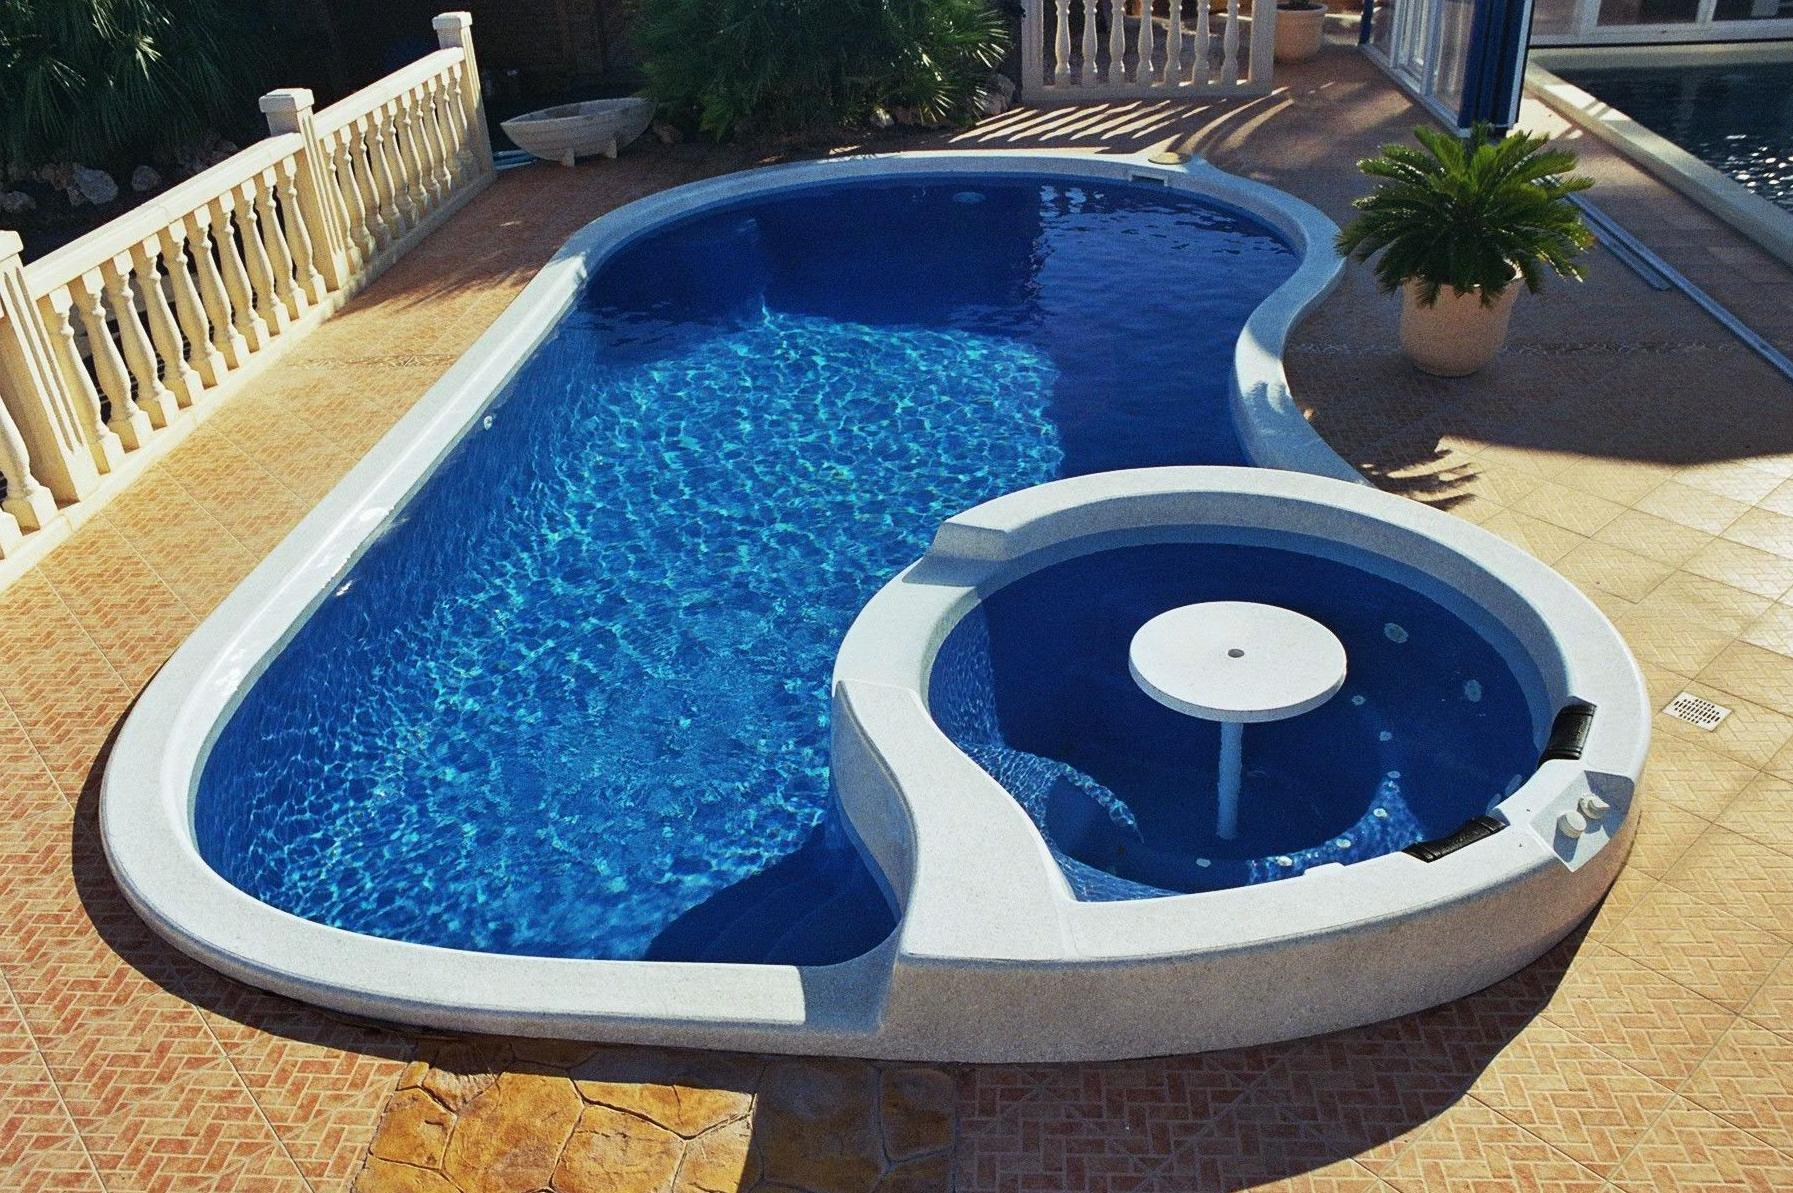 Piscinas freedom pool piscinas y accesorios de ardigral for Piscinas ecologicas precios